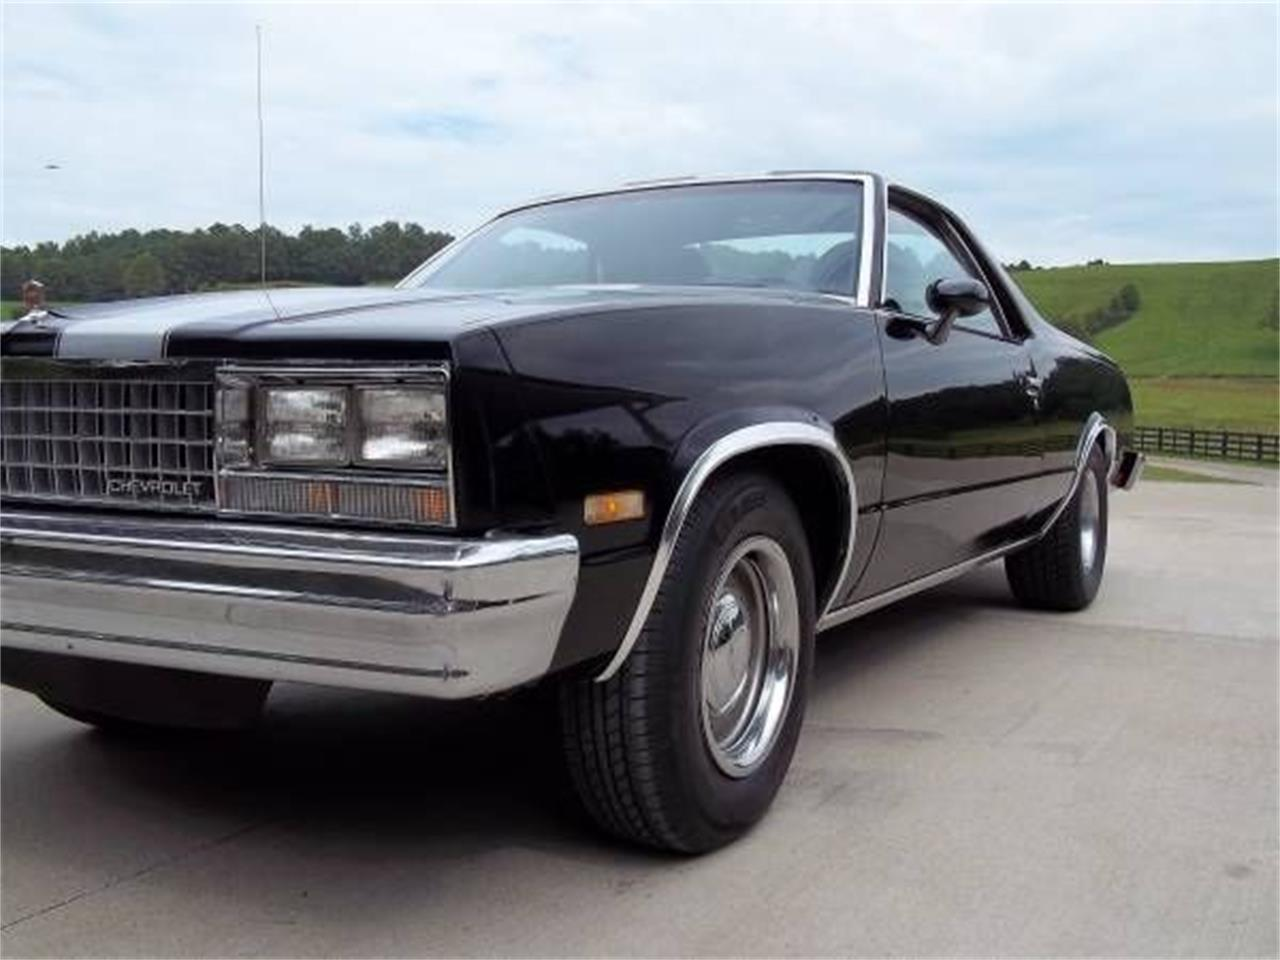 1985 Chevrolet El Camino for sale in Cadillac, MI – photo 14